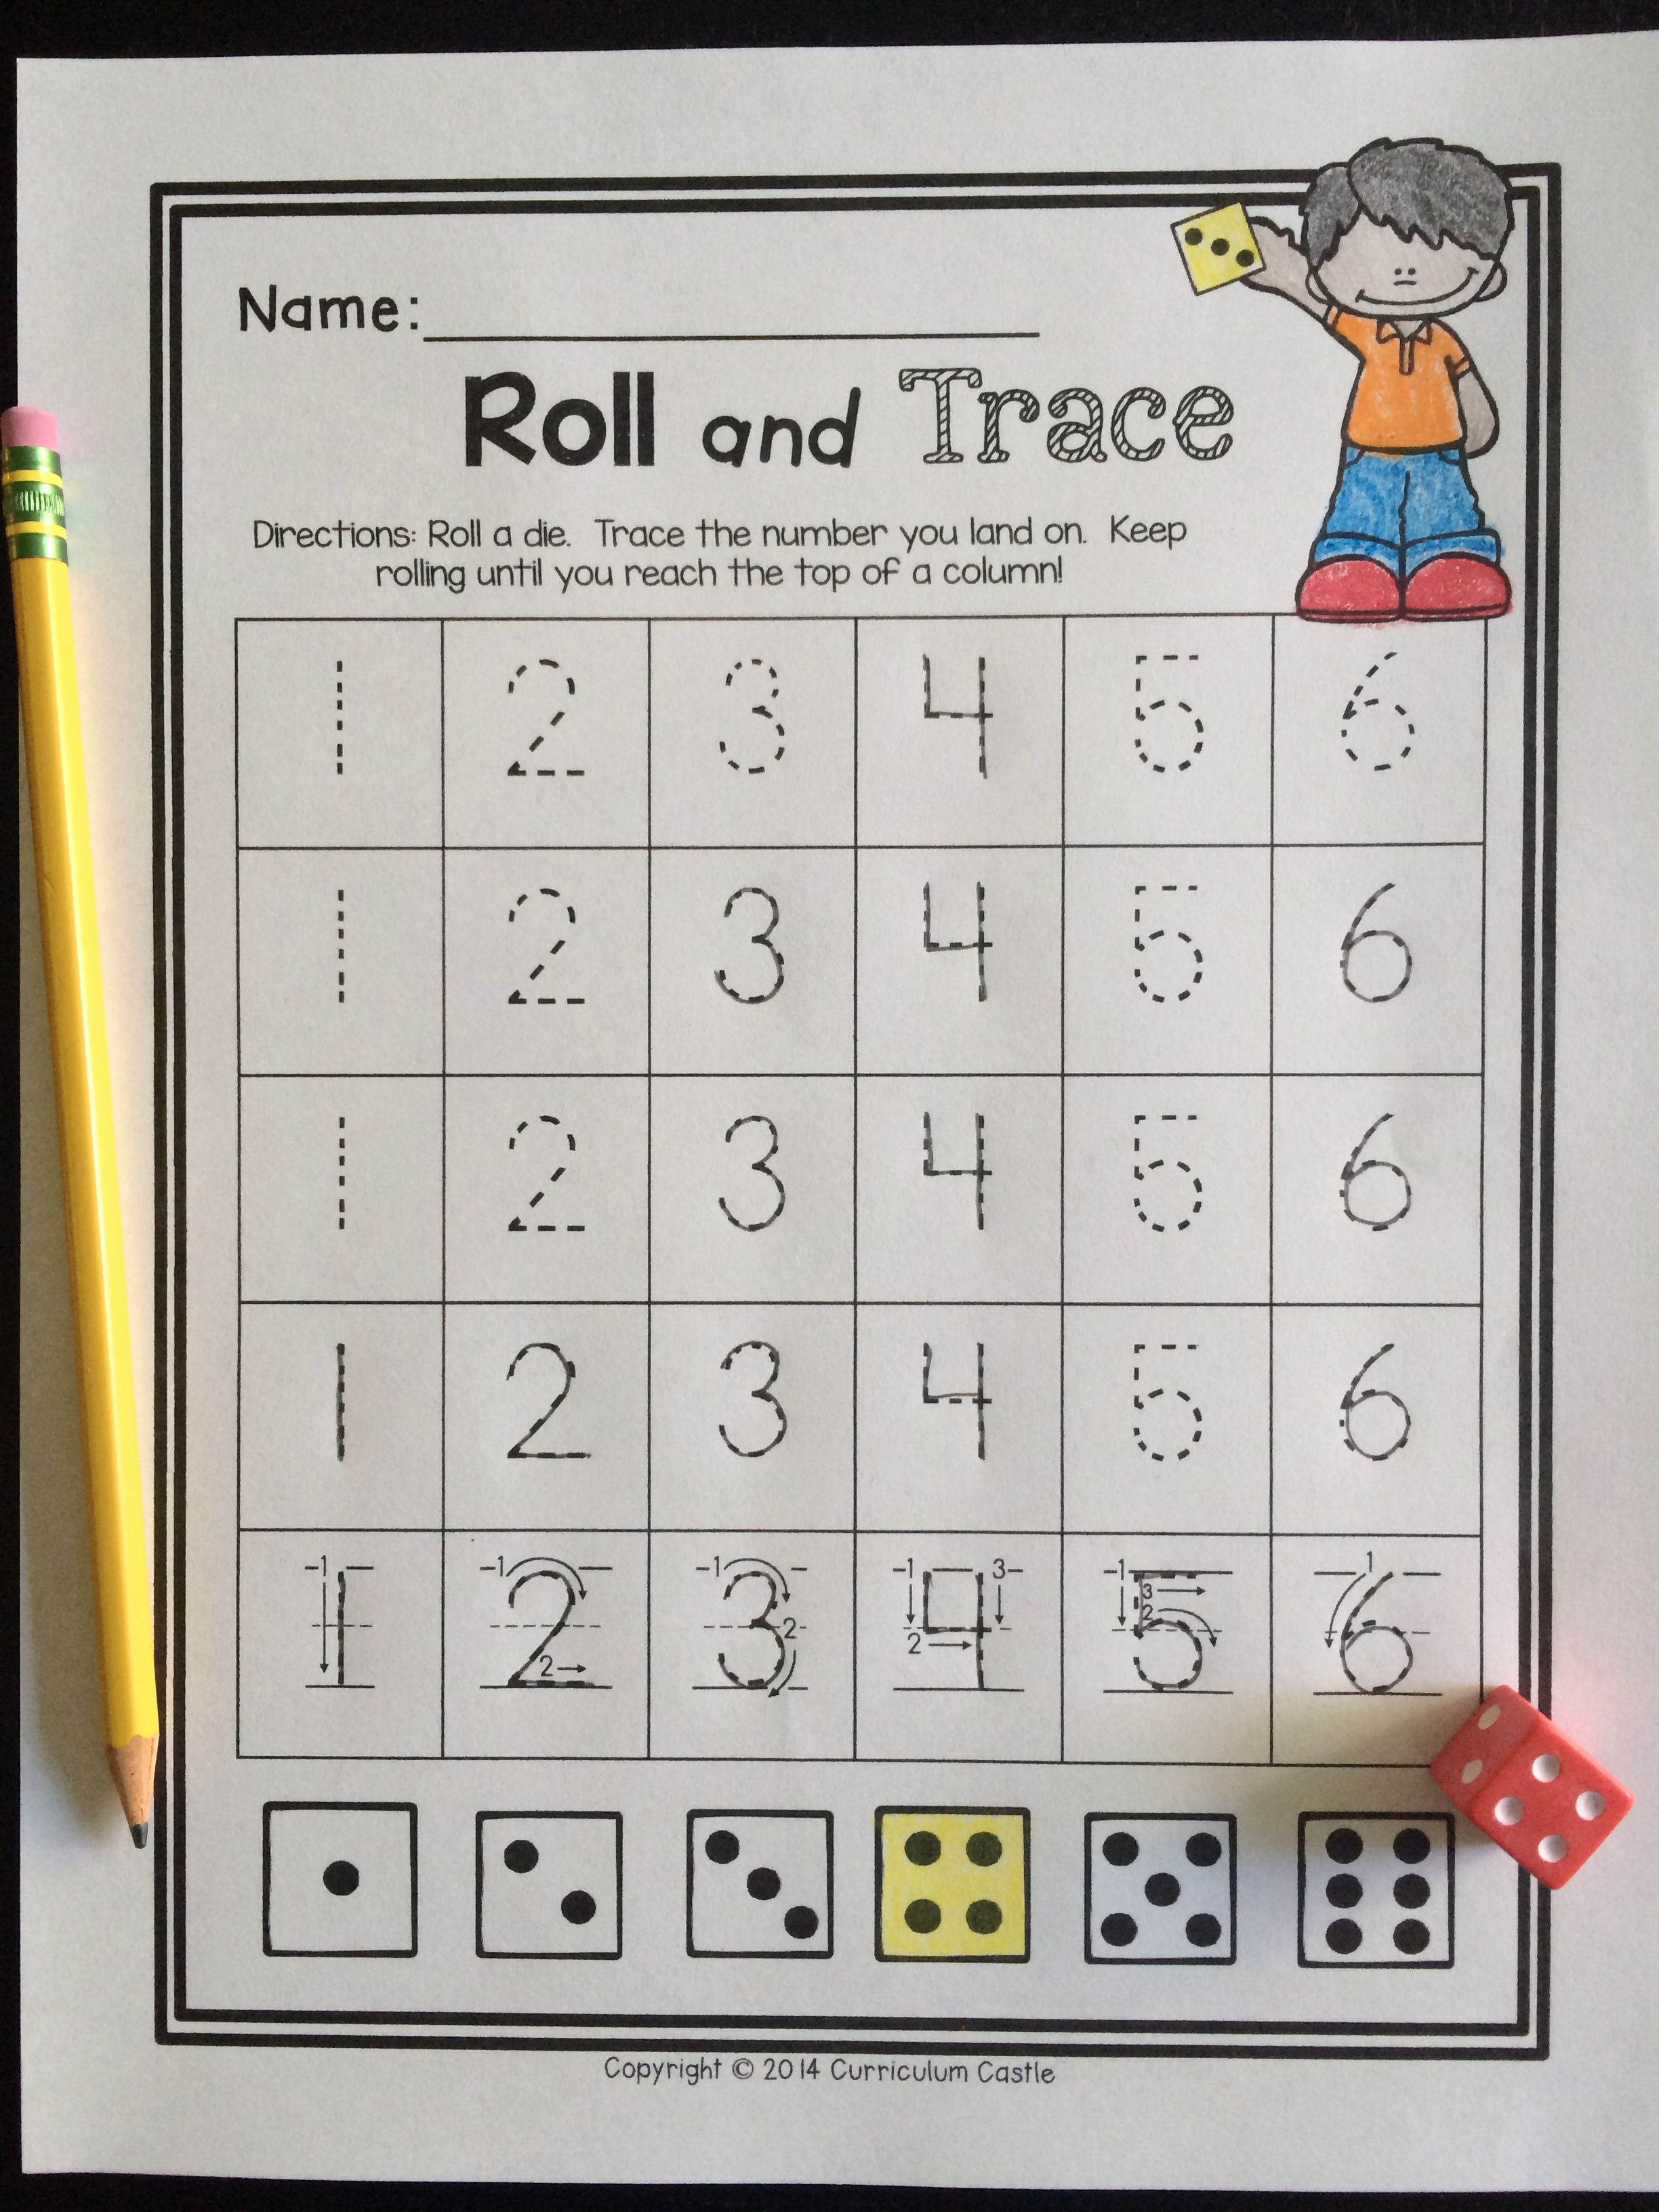 Kinder Garden: Back To School Kindergarten Math: Roll And Trace A Number